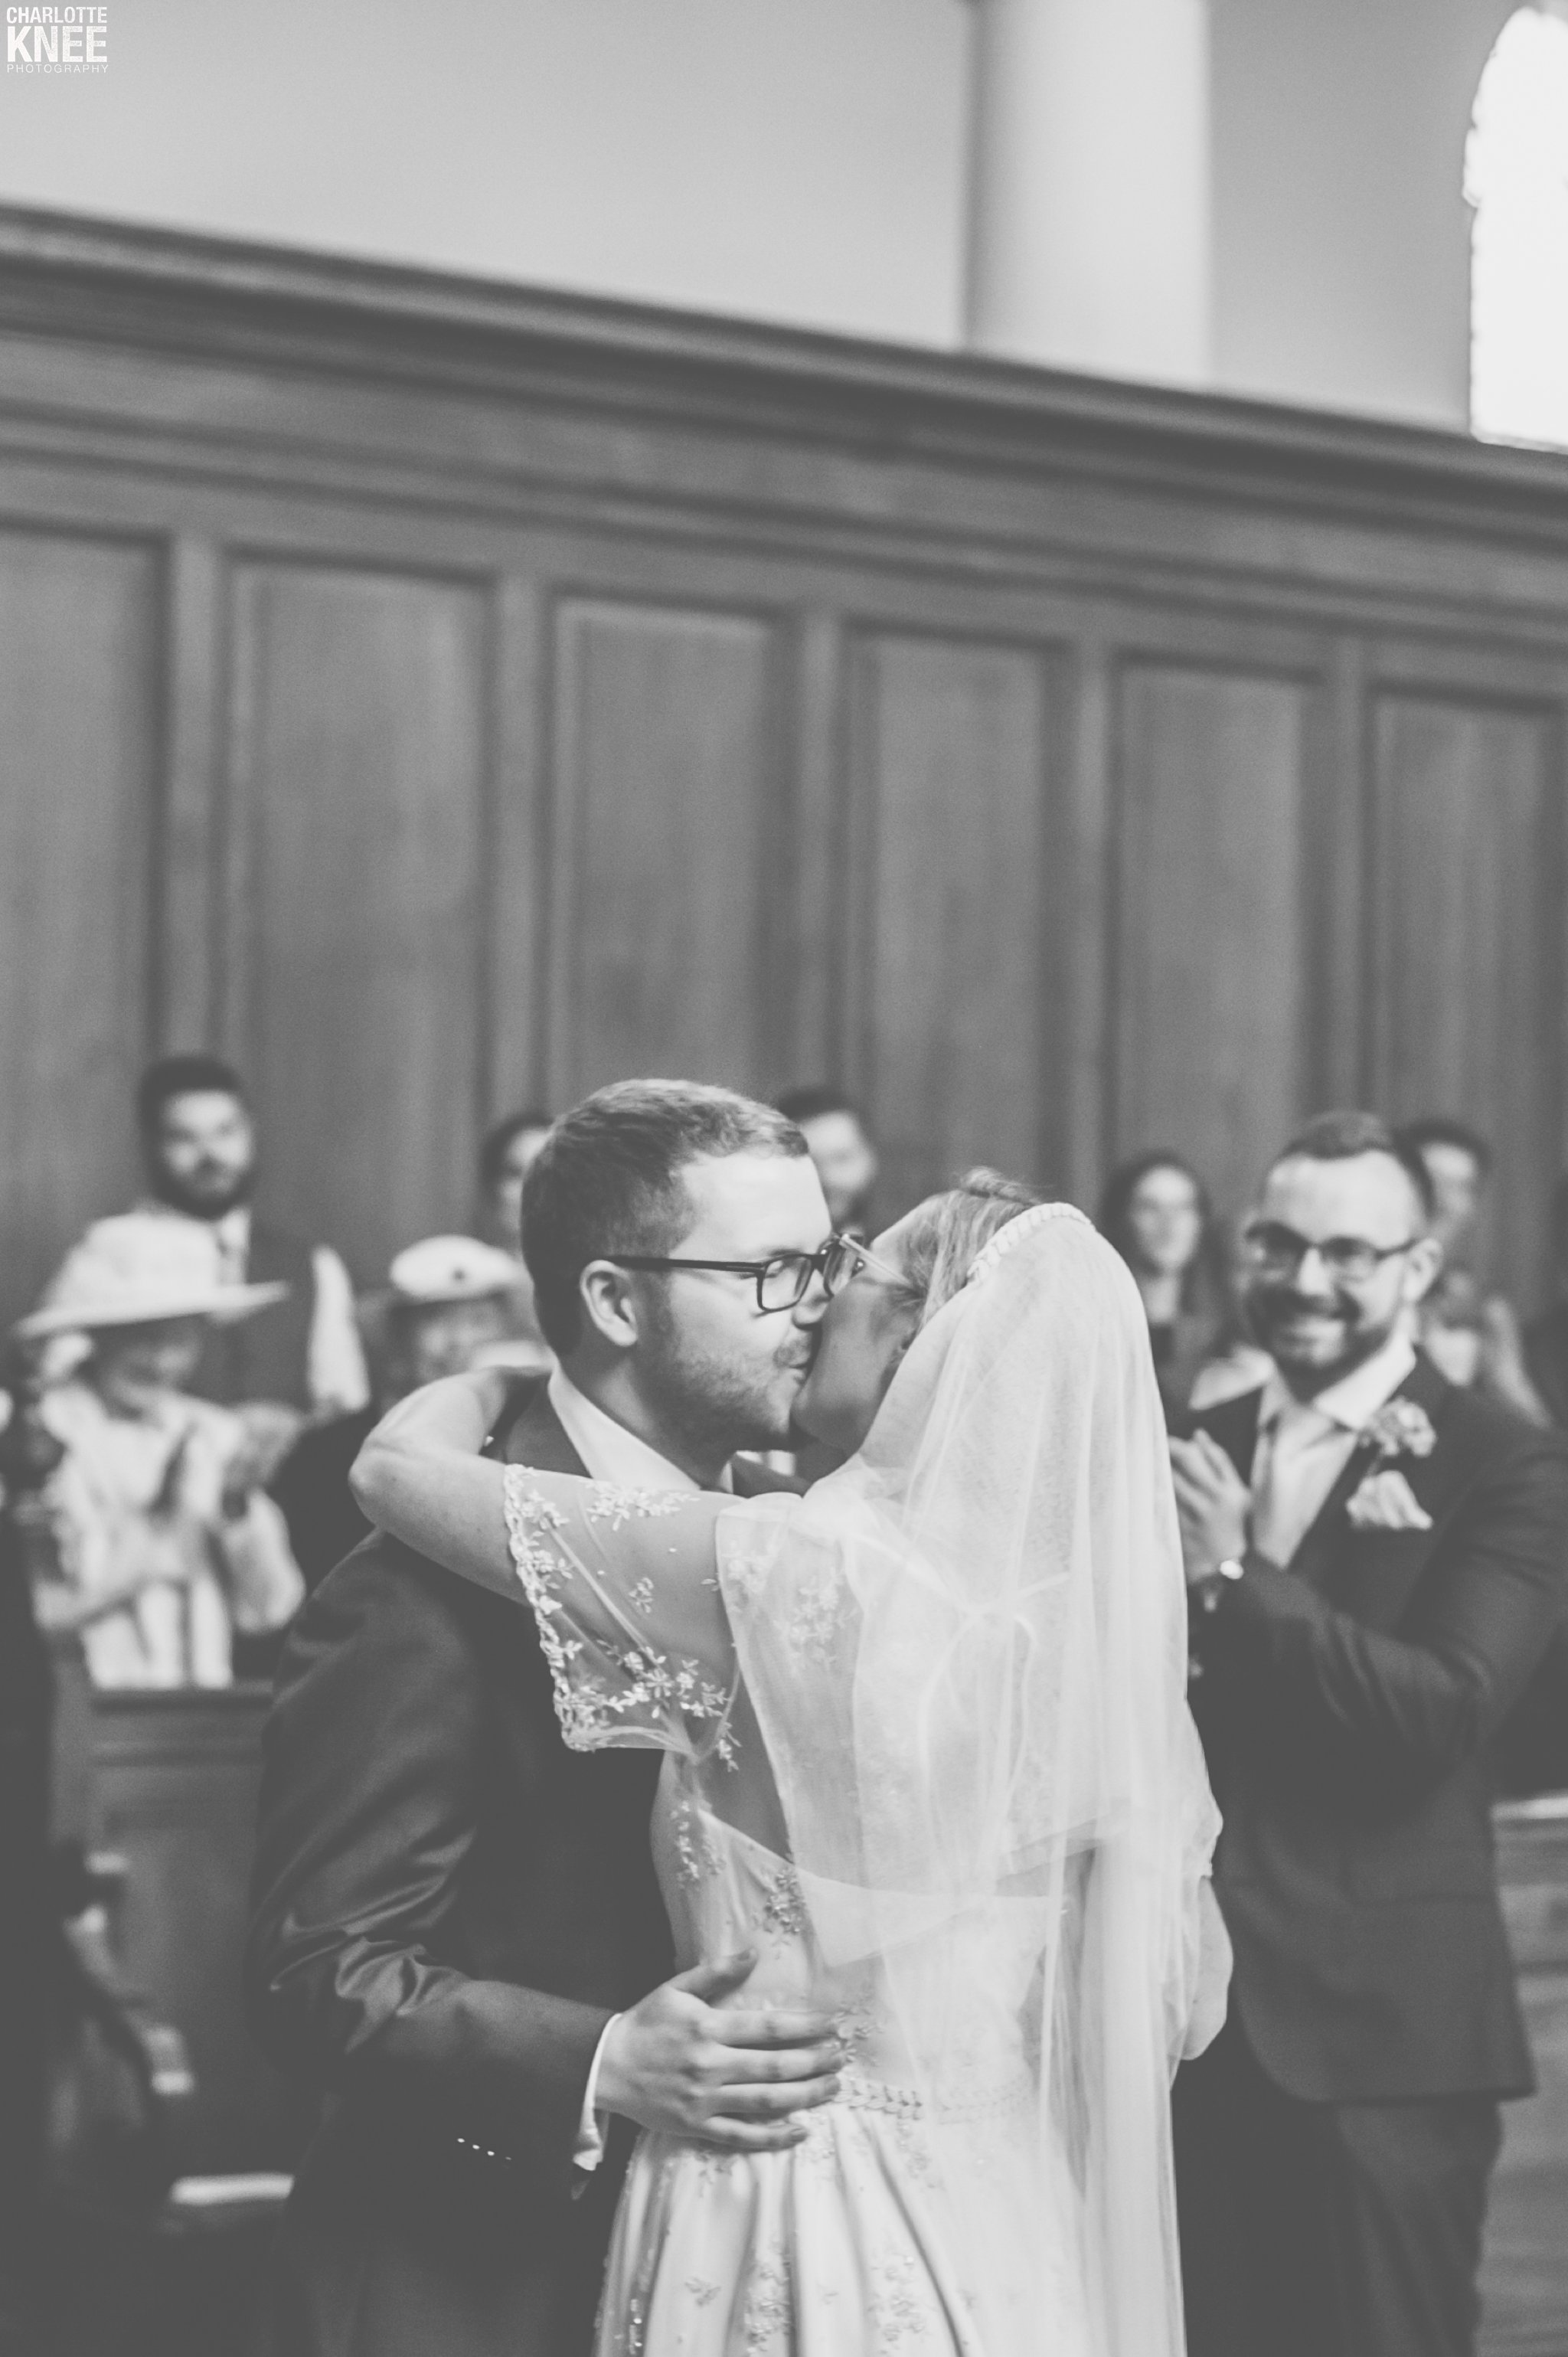 Saddlers Hall London Wedding Photography Copyright Charlotte Knee Photography_0087.jpg